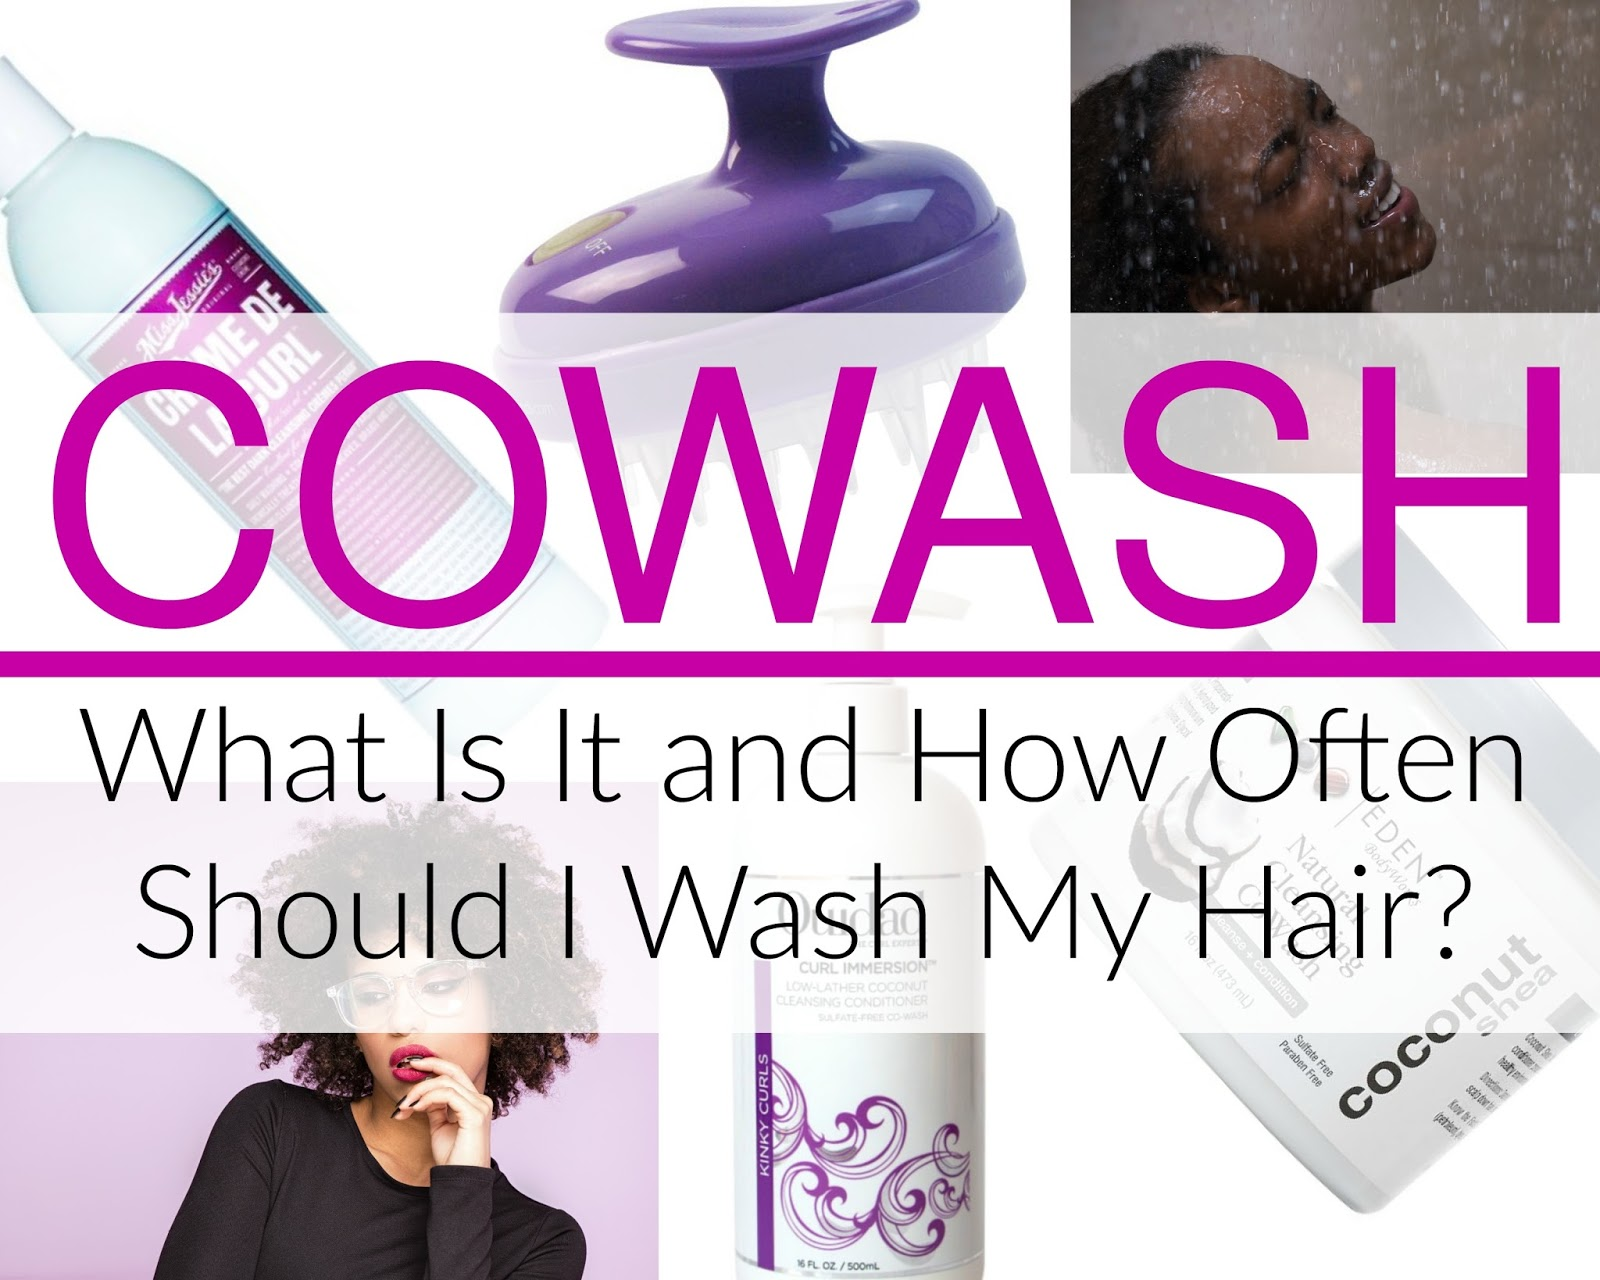 More black women are going natural and one of the biggest questions they have is how to wash my hair and what is a cowash or cowashing hair? Find out here!